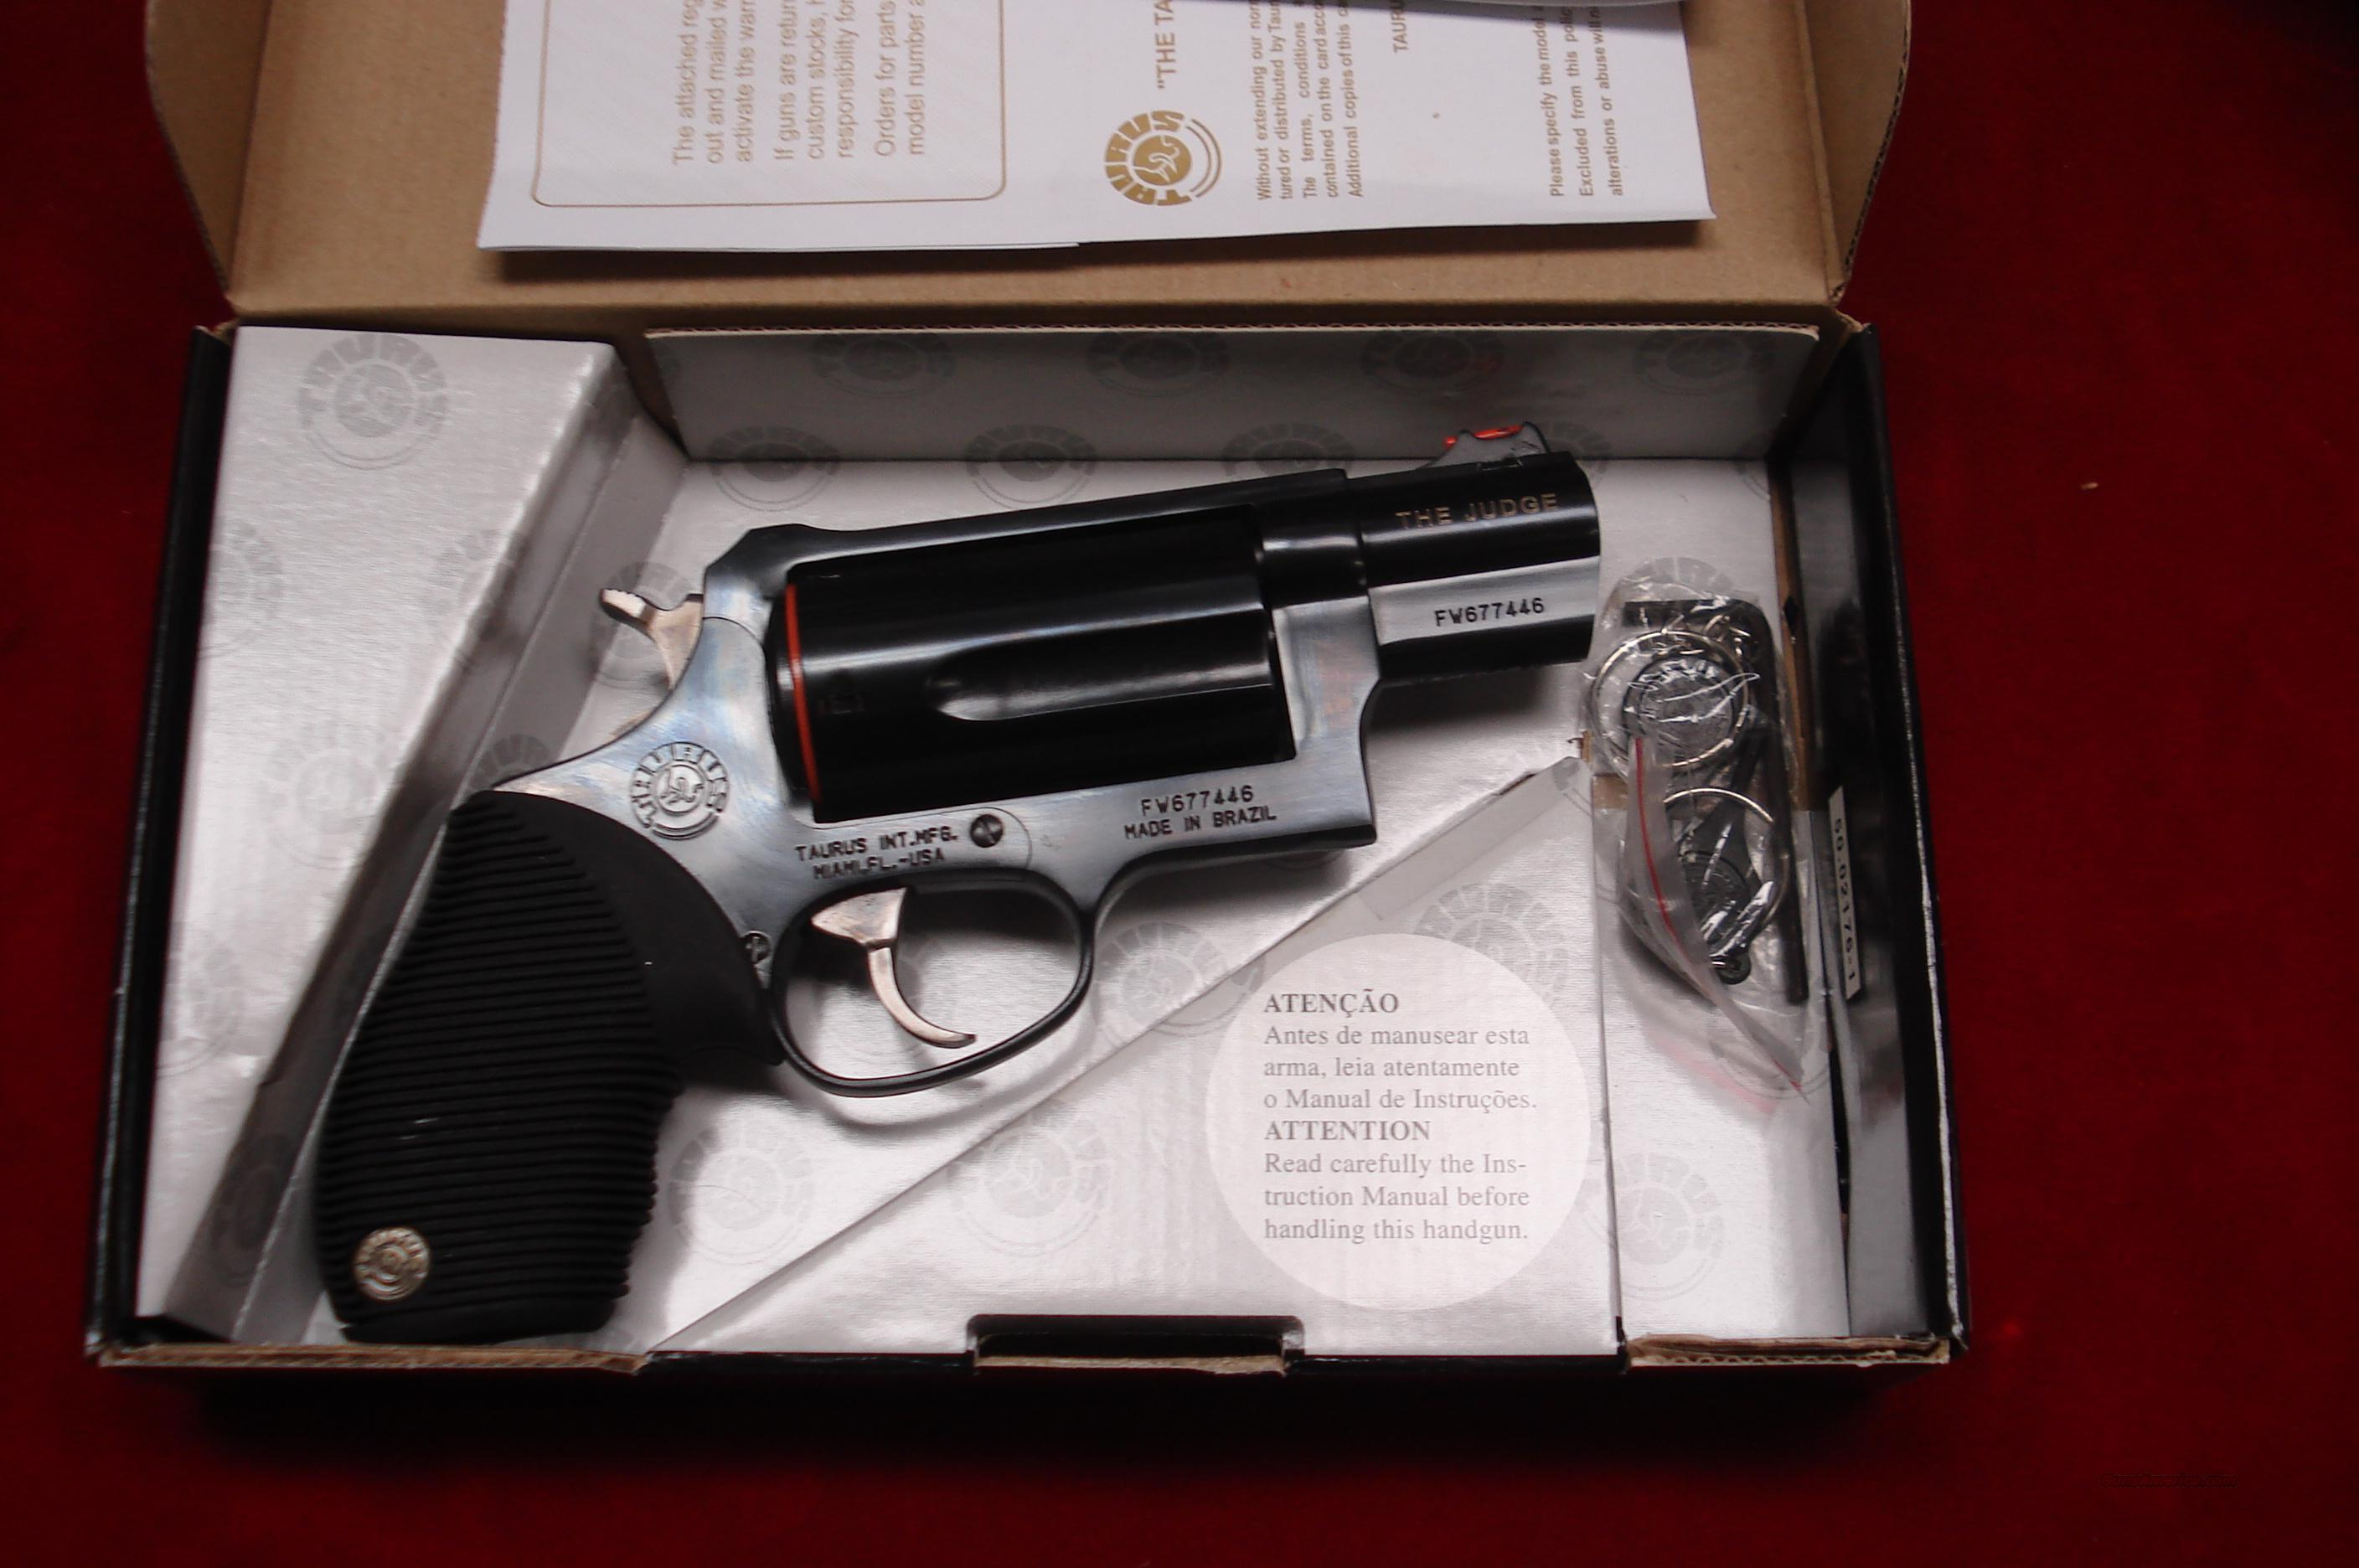 "TAURUS 410G REVOLVER ""THE JUDGE"" 2"" BARREL PUBLIC DEFENDER NEW  Guns > Pistols > Taurus Pistols/Revolvers > Revolvers"